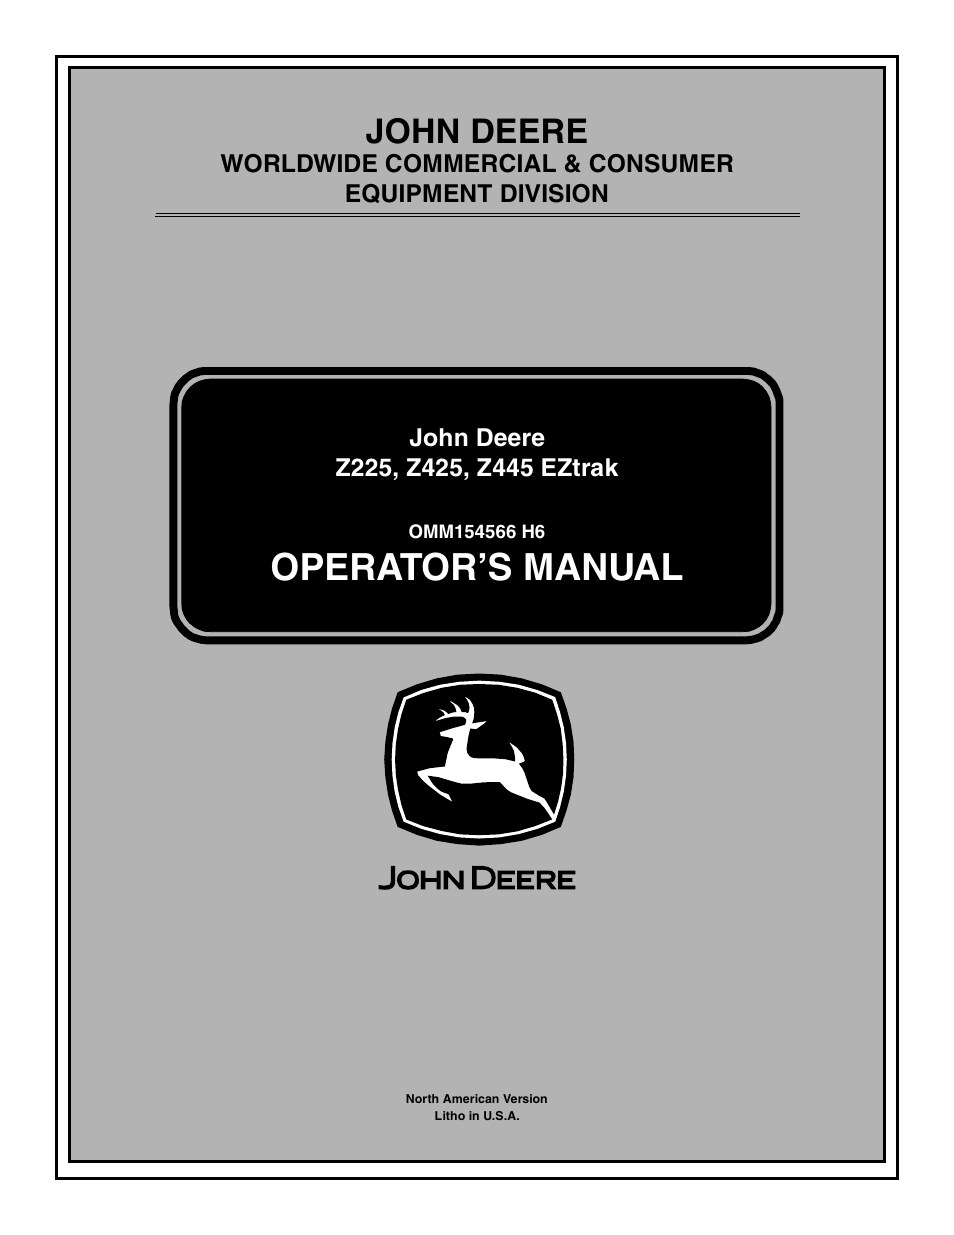 John Deere 425 54 Mower Deck Manual Best Deer Photos Water 60 Wiring Diagram Z425 User 48 Pages Also For Z225 Z445 Eztrak